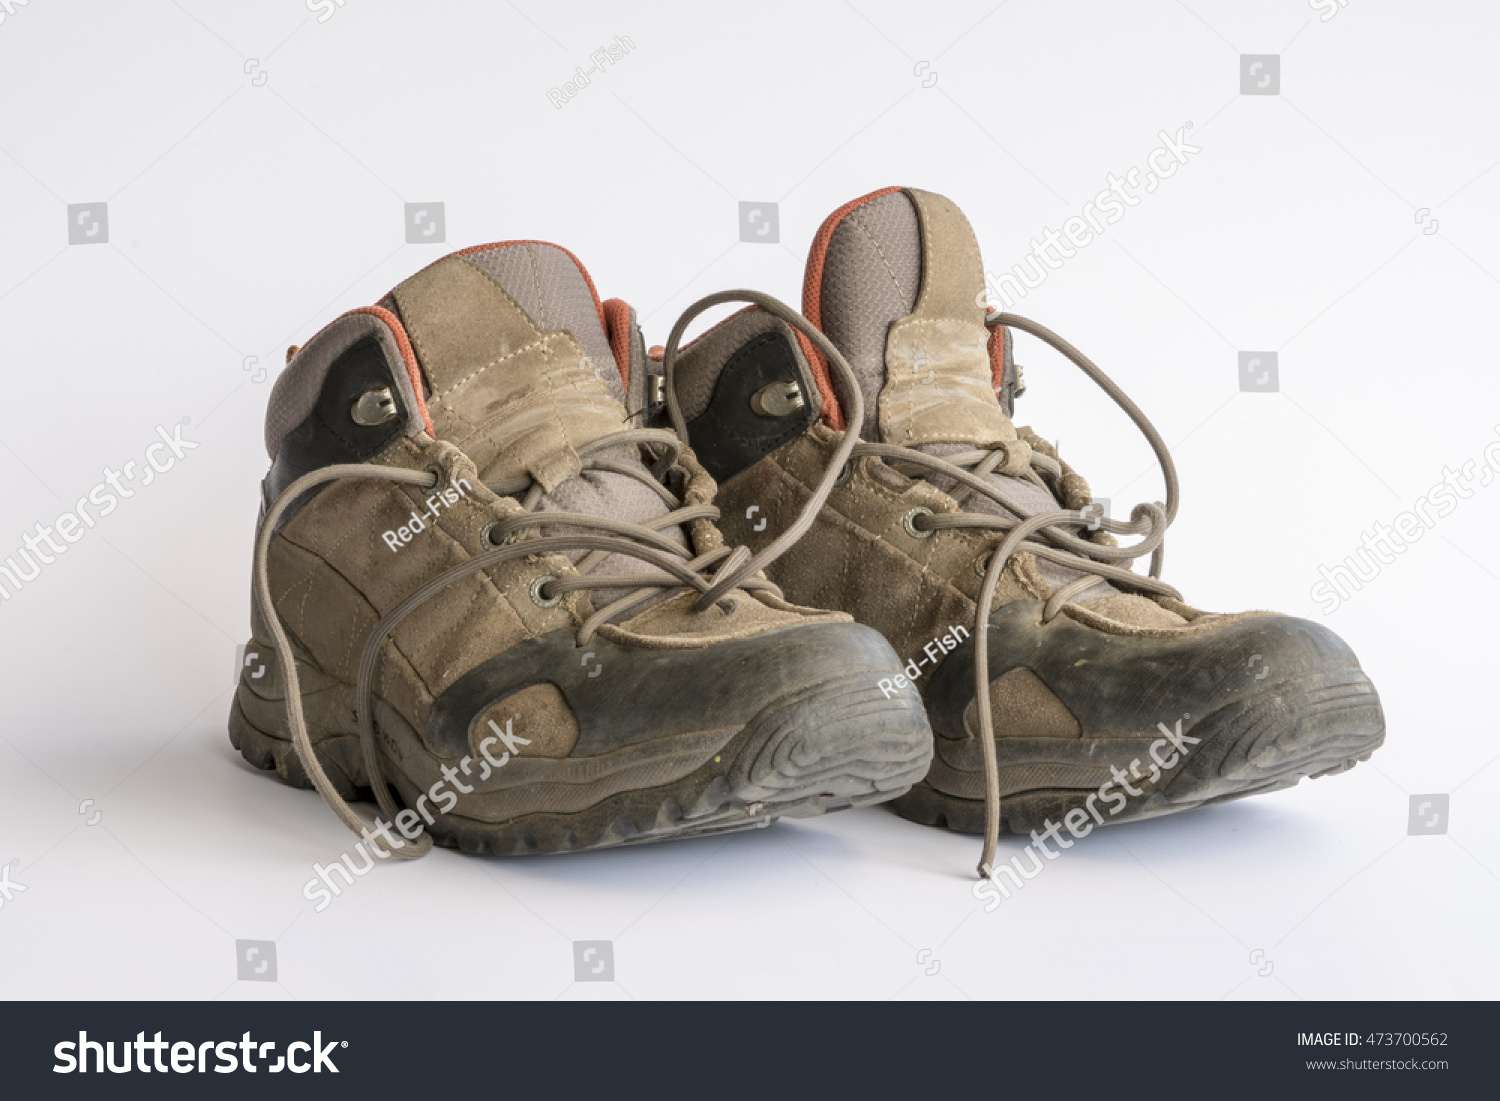 Used Hiking Boots Stock Photo 473700562 - Shutterstock